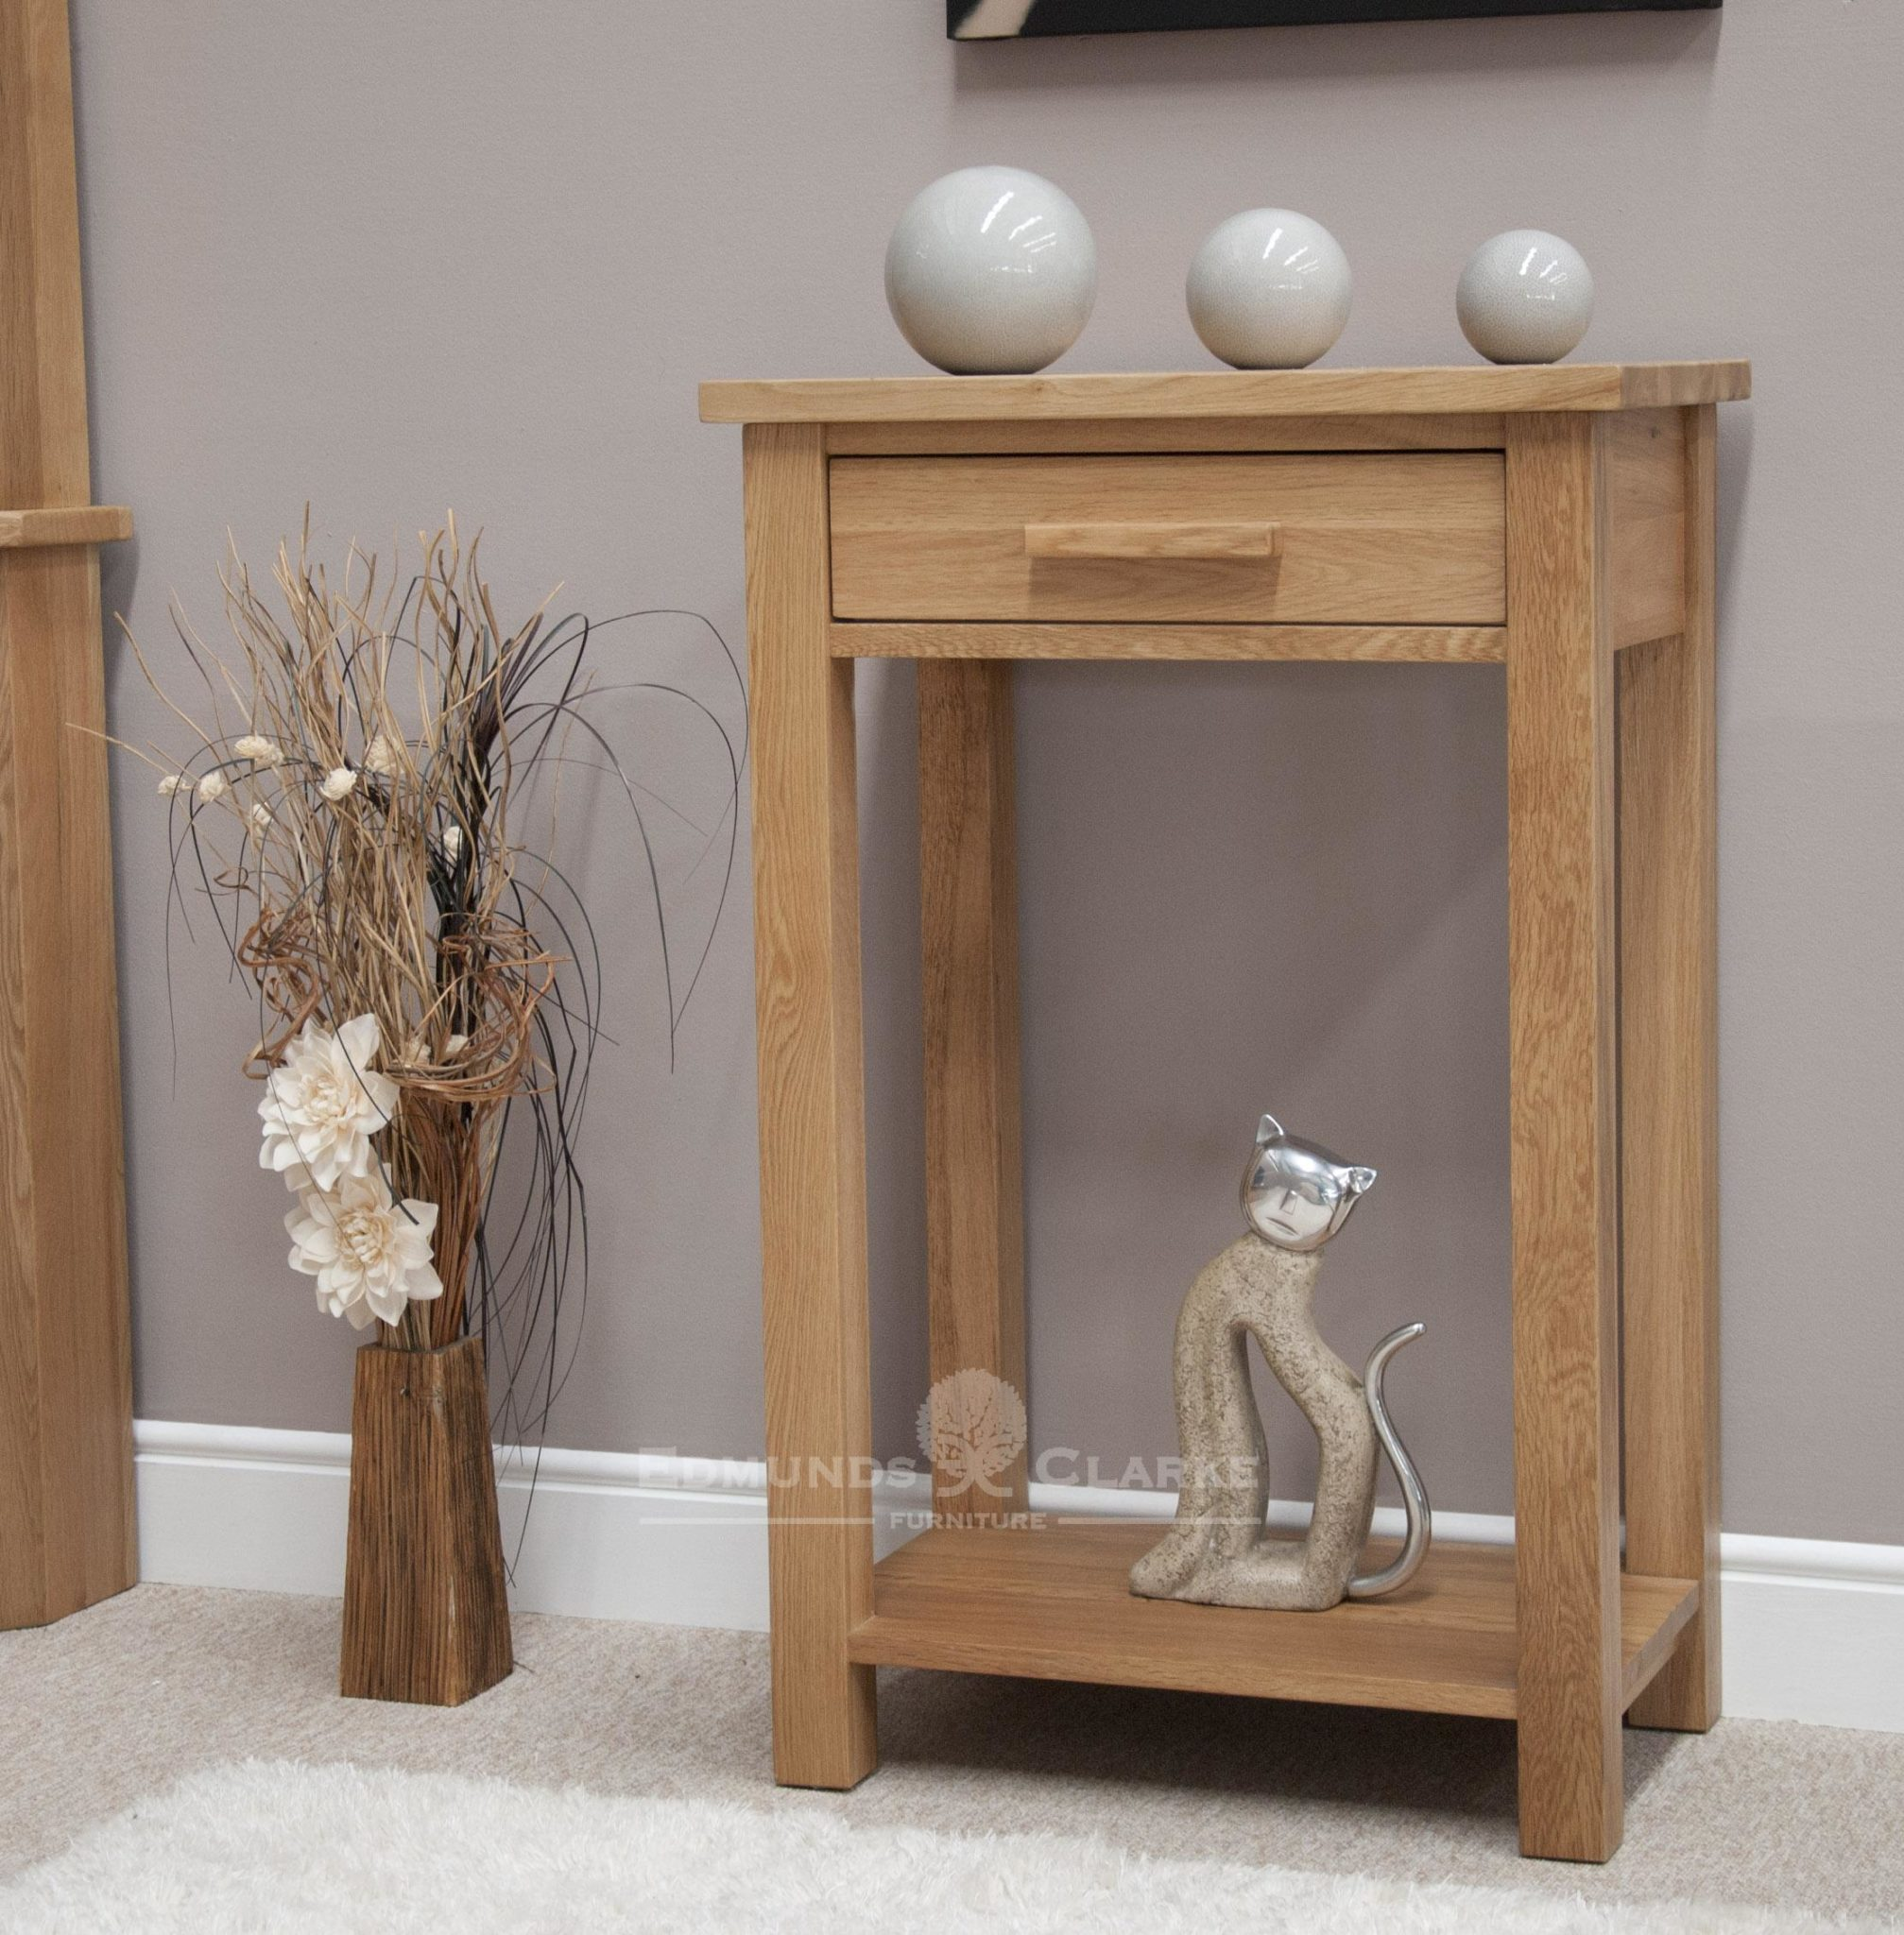 Bury Solid Oak Small Console Hall Table. one drawer with handy shelf at bottom of console table handy for baskets, chrome handles as standard. oak bar handles available as extra